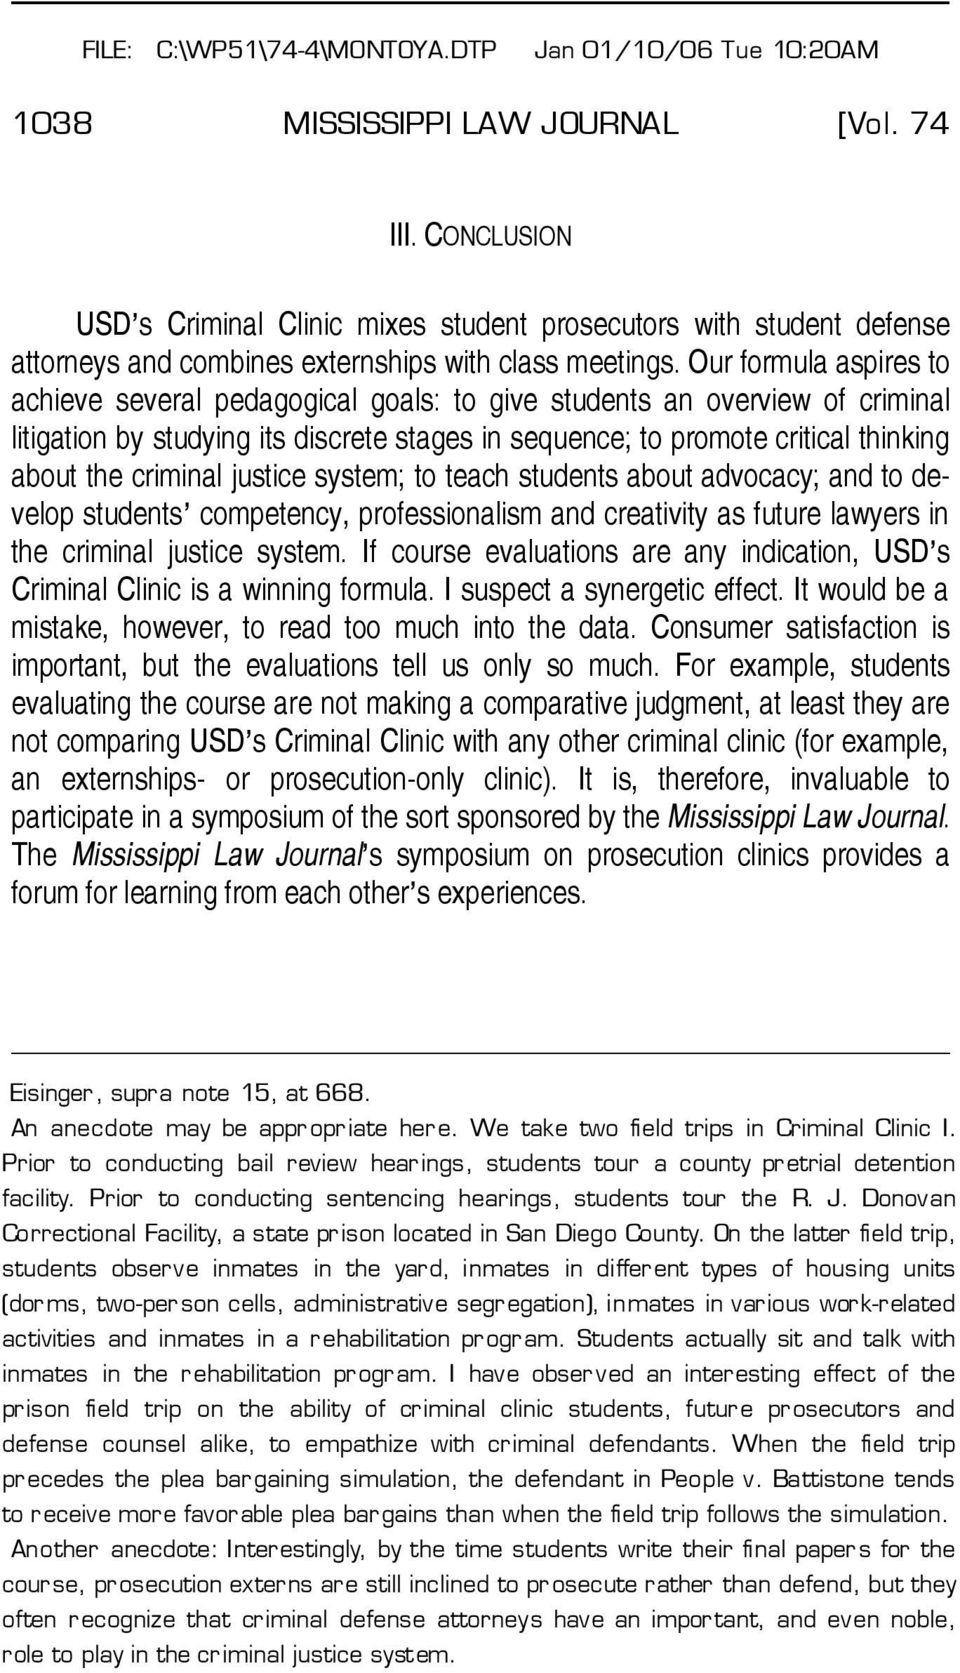 Our formula aspires to achieve several pedagogical goals: to give students an overview of criminal litigation by studying its discrete stages in sequence; to promote critical thinking about the